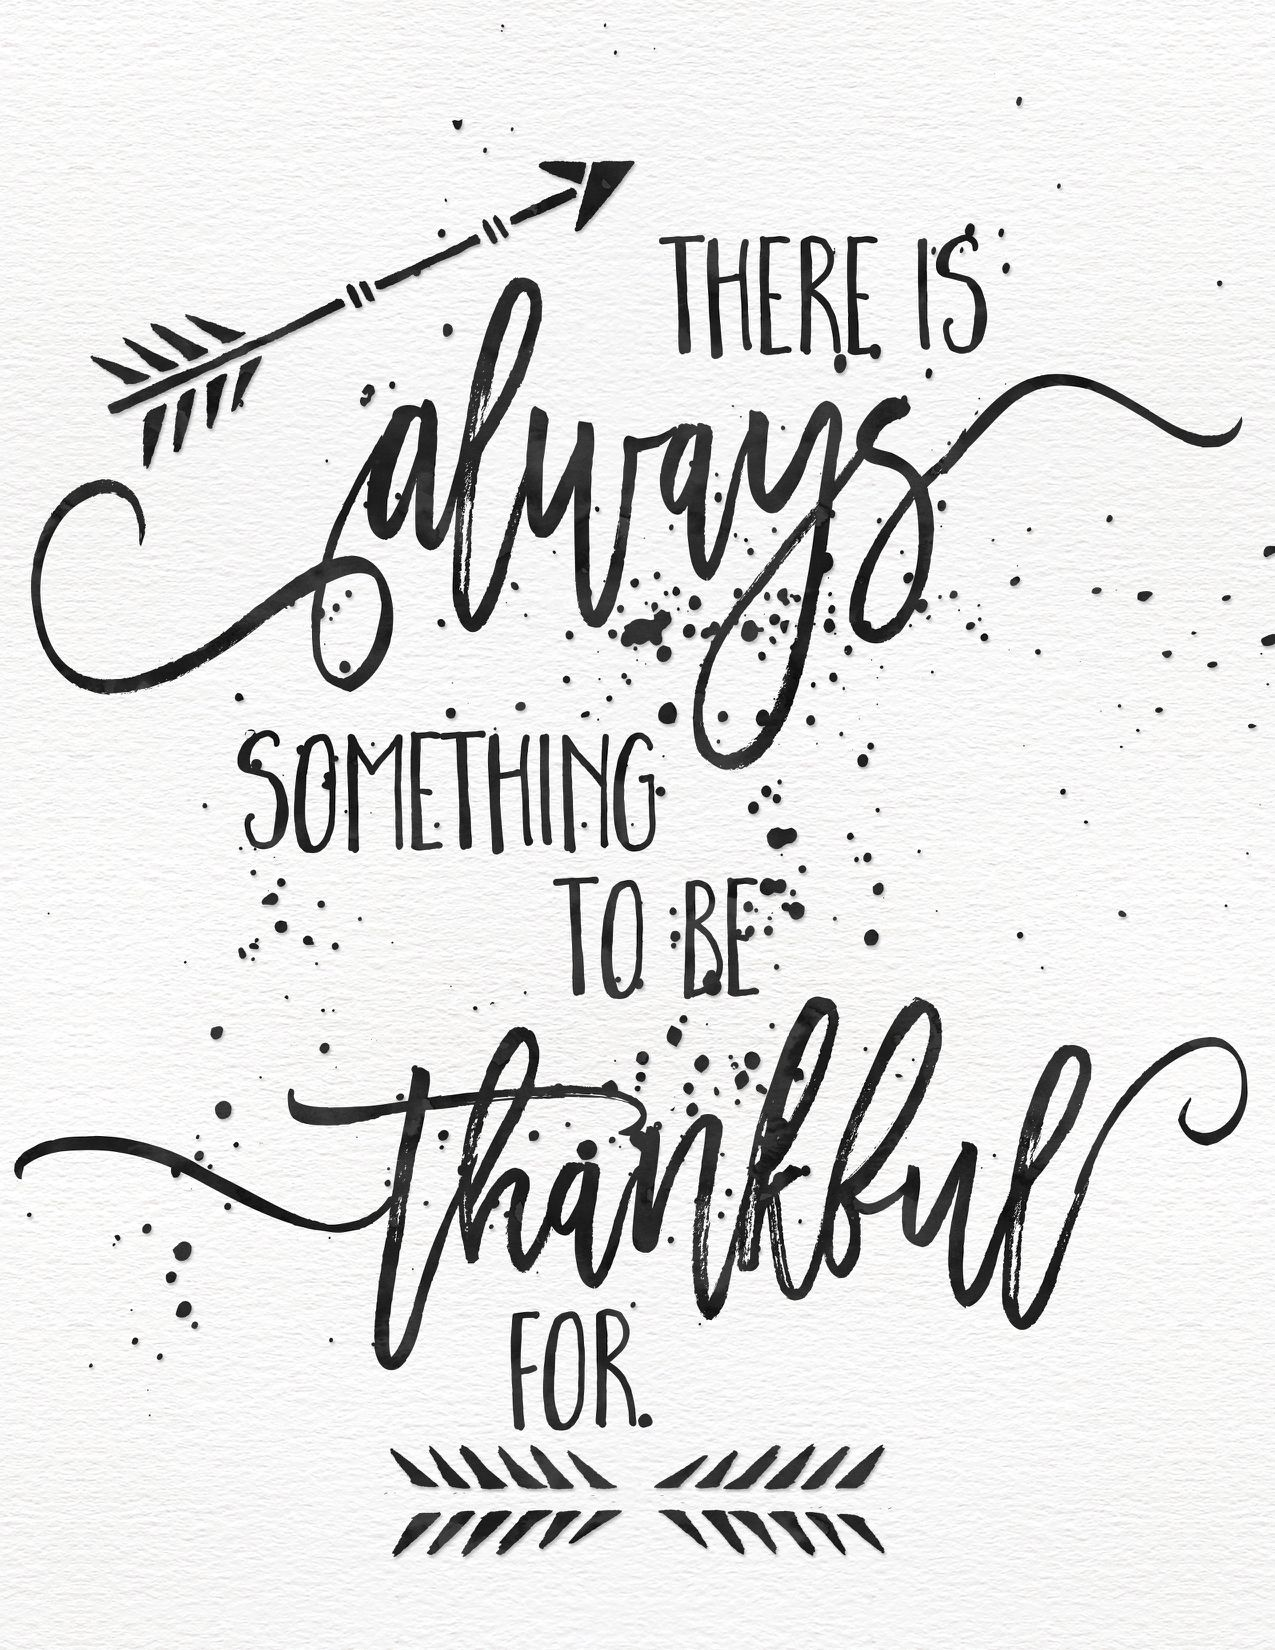 Pin by Mona Hemenway on crafts Hand lettering quotes